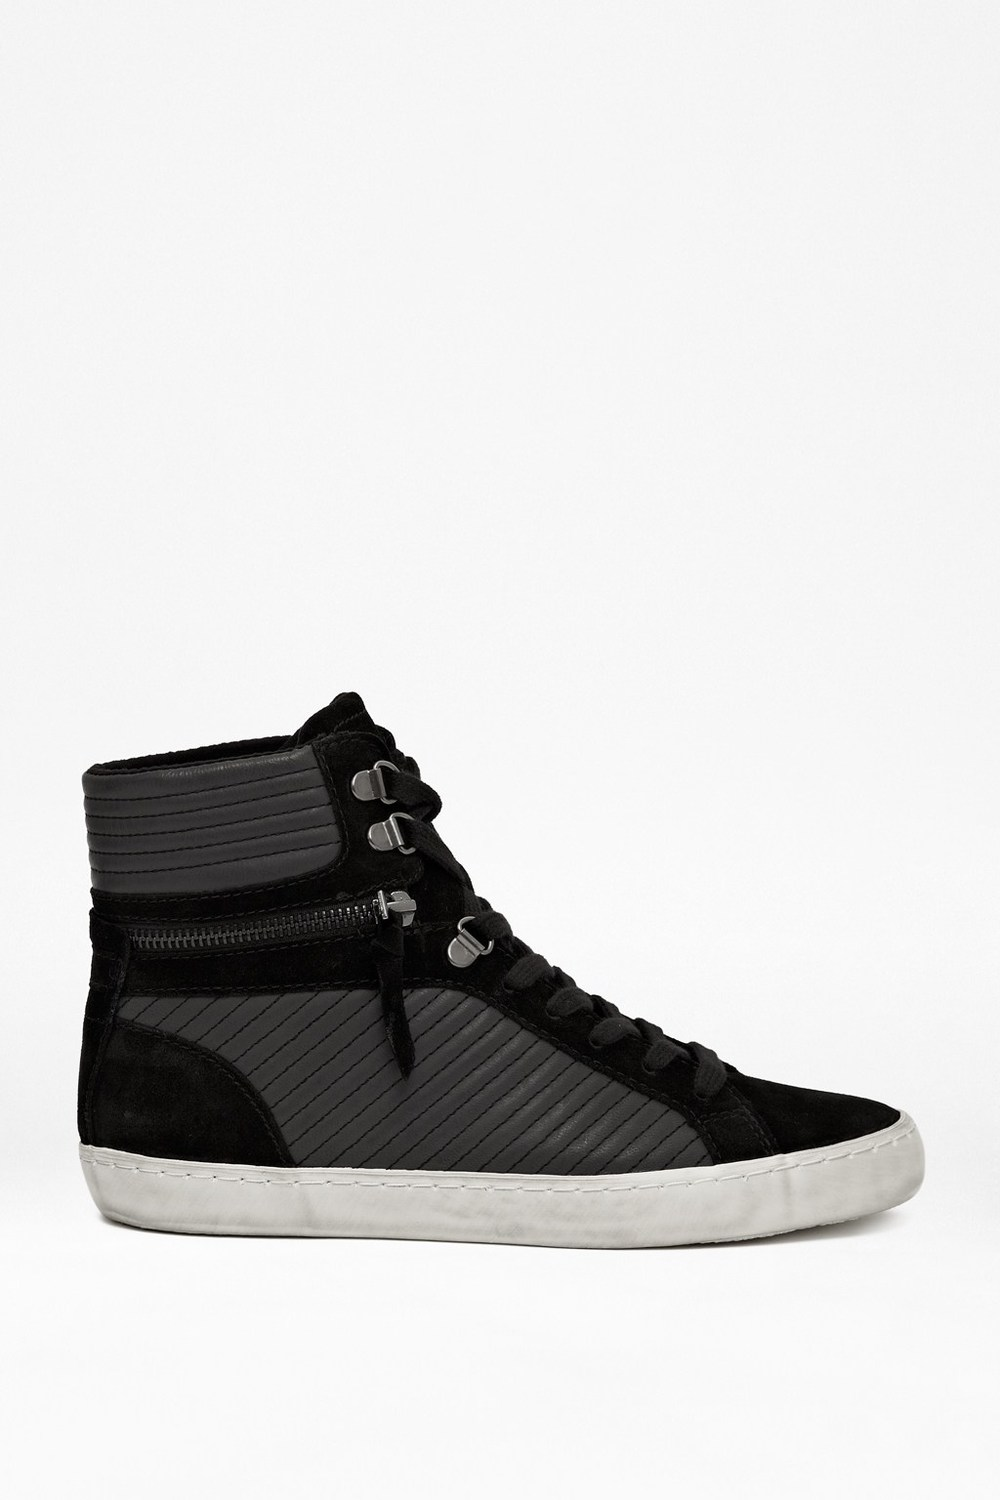 French Connection Lodlow Zipper Leather Trainers / Second Floor Flat